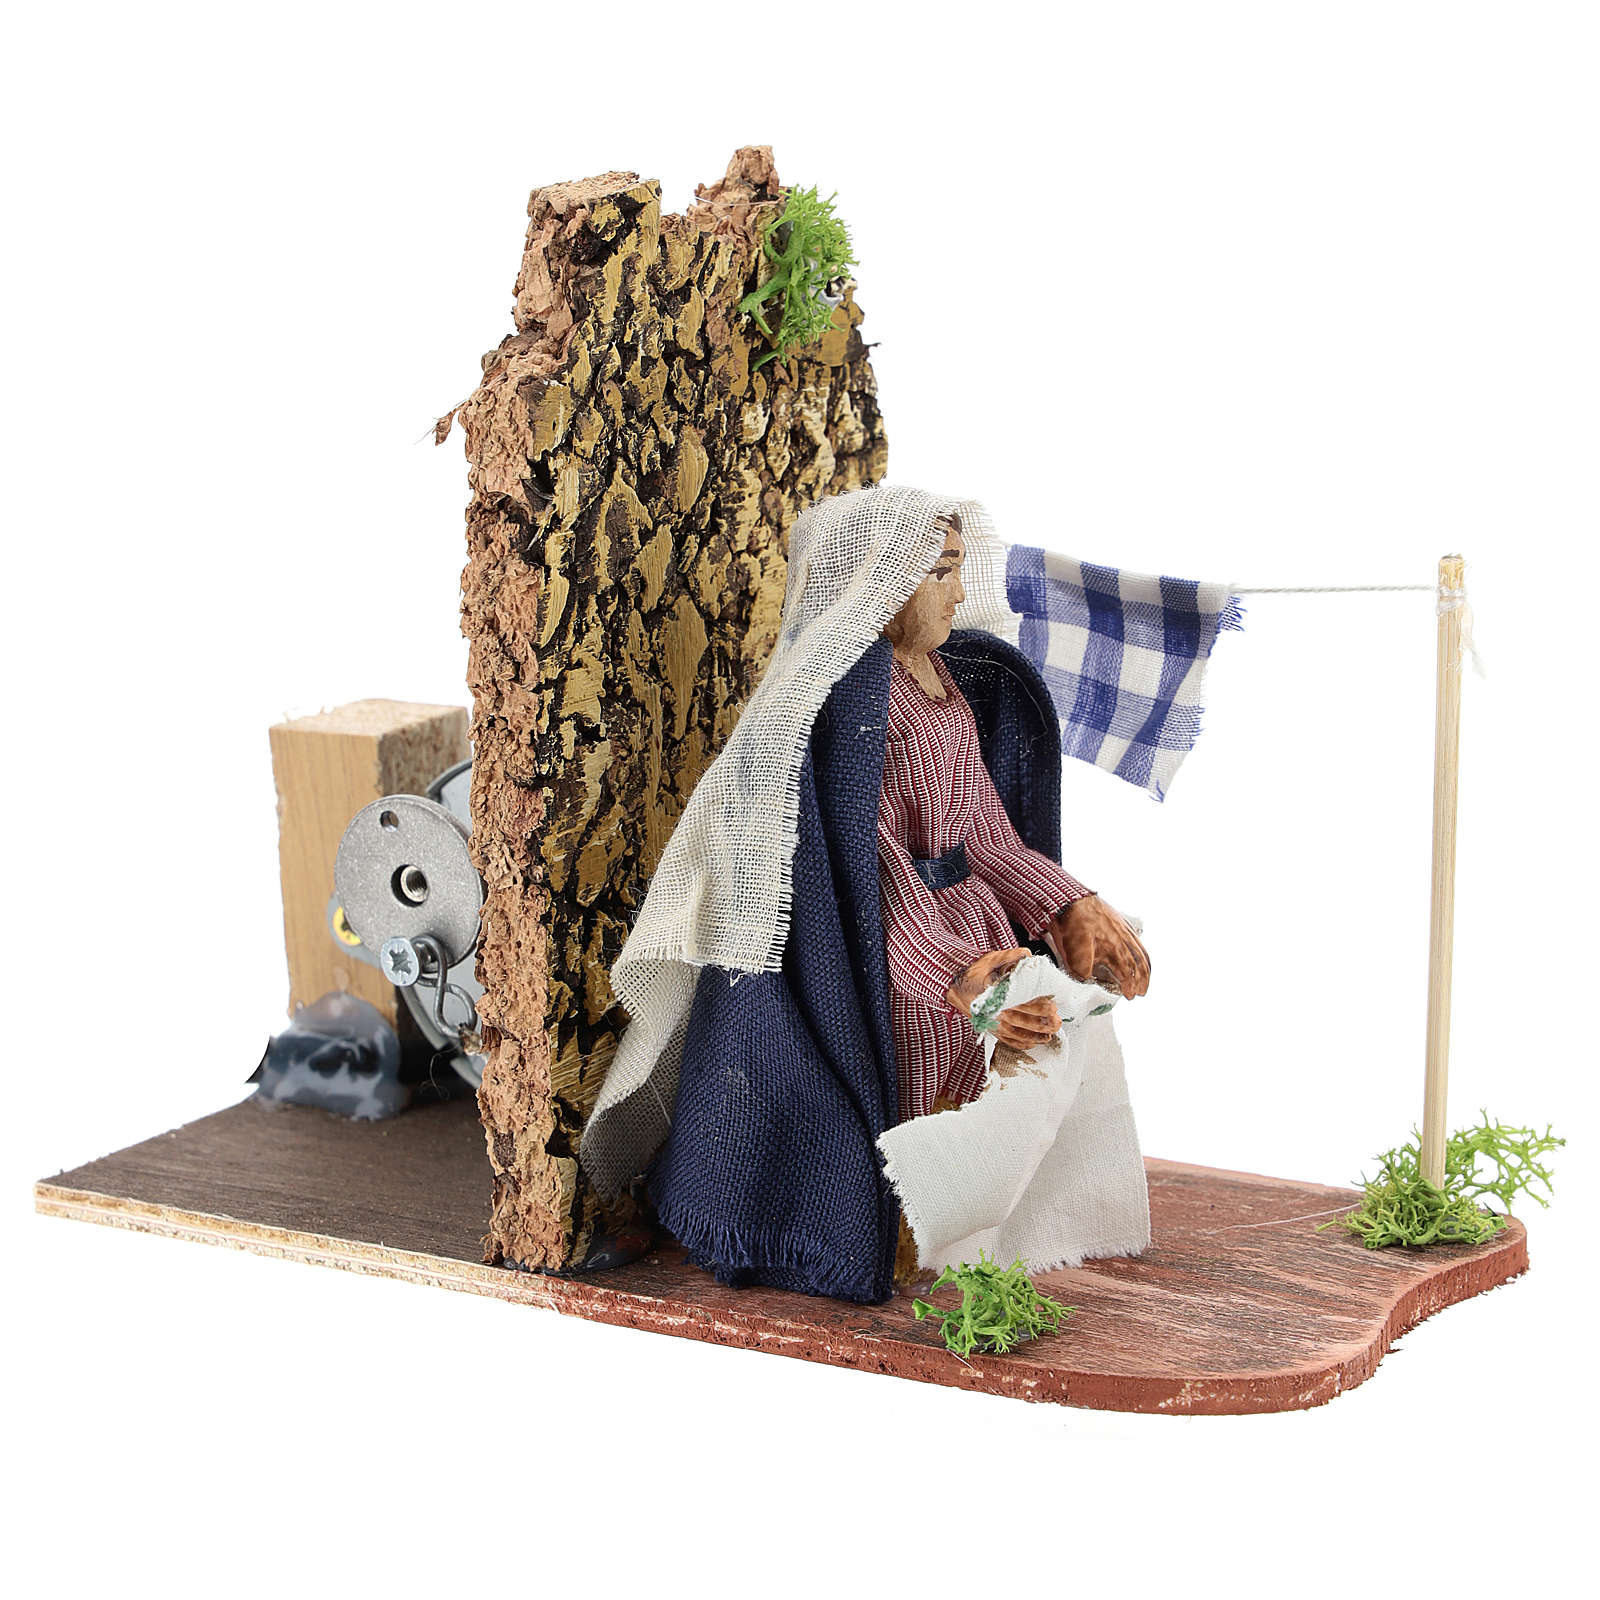 Moving woman hanging linens for Neapolitan Nativity Scene 7 cm 4